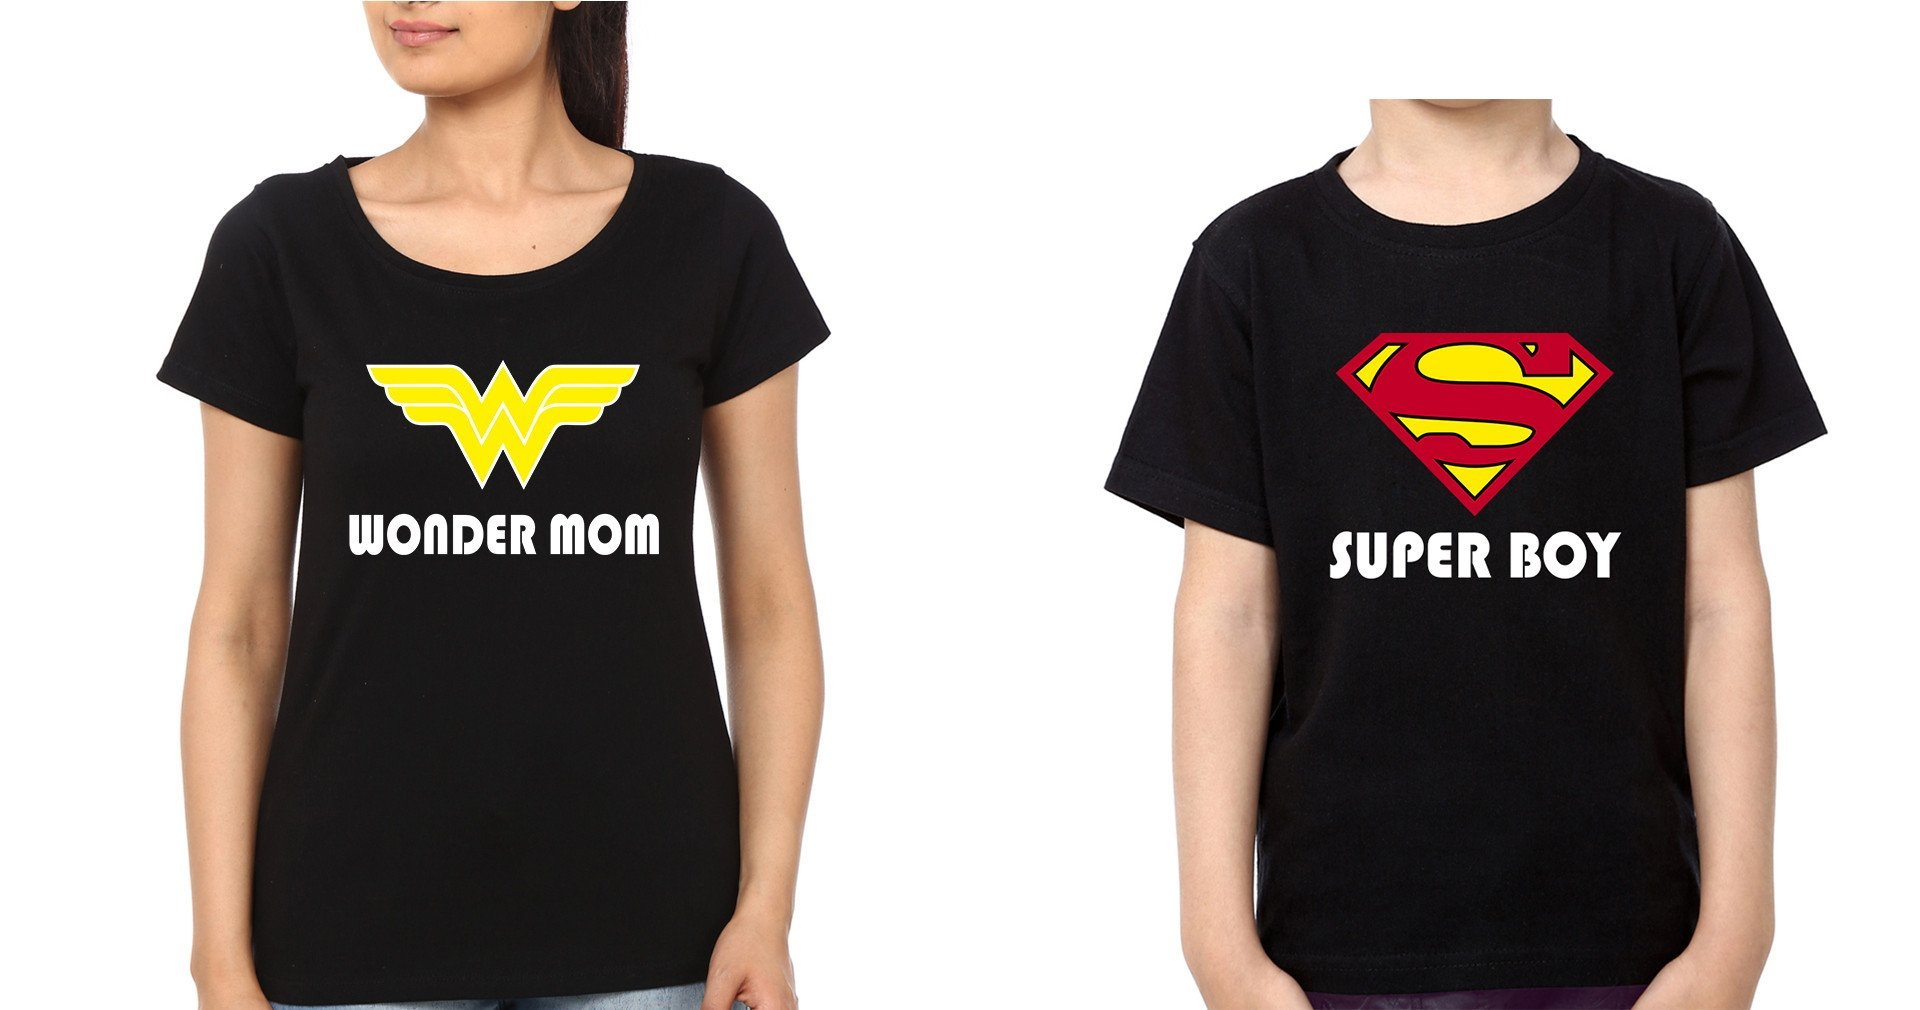 ektarfa.com Mother Son T-shirts Wonder Mom Super Boy T-Shirts